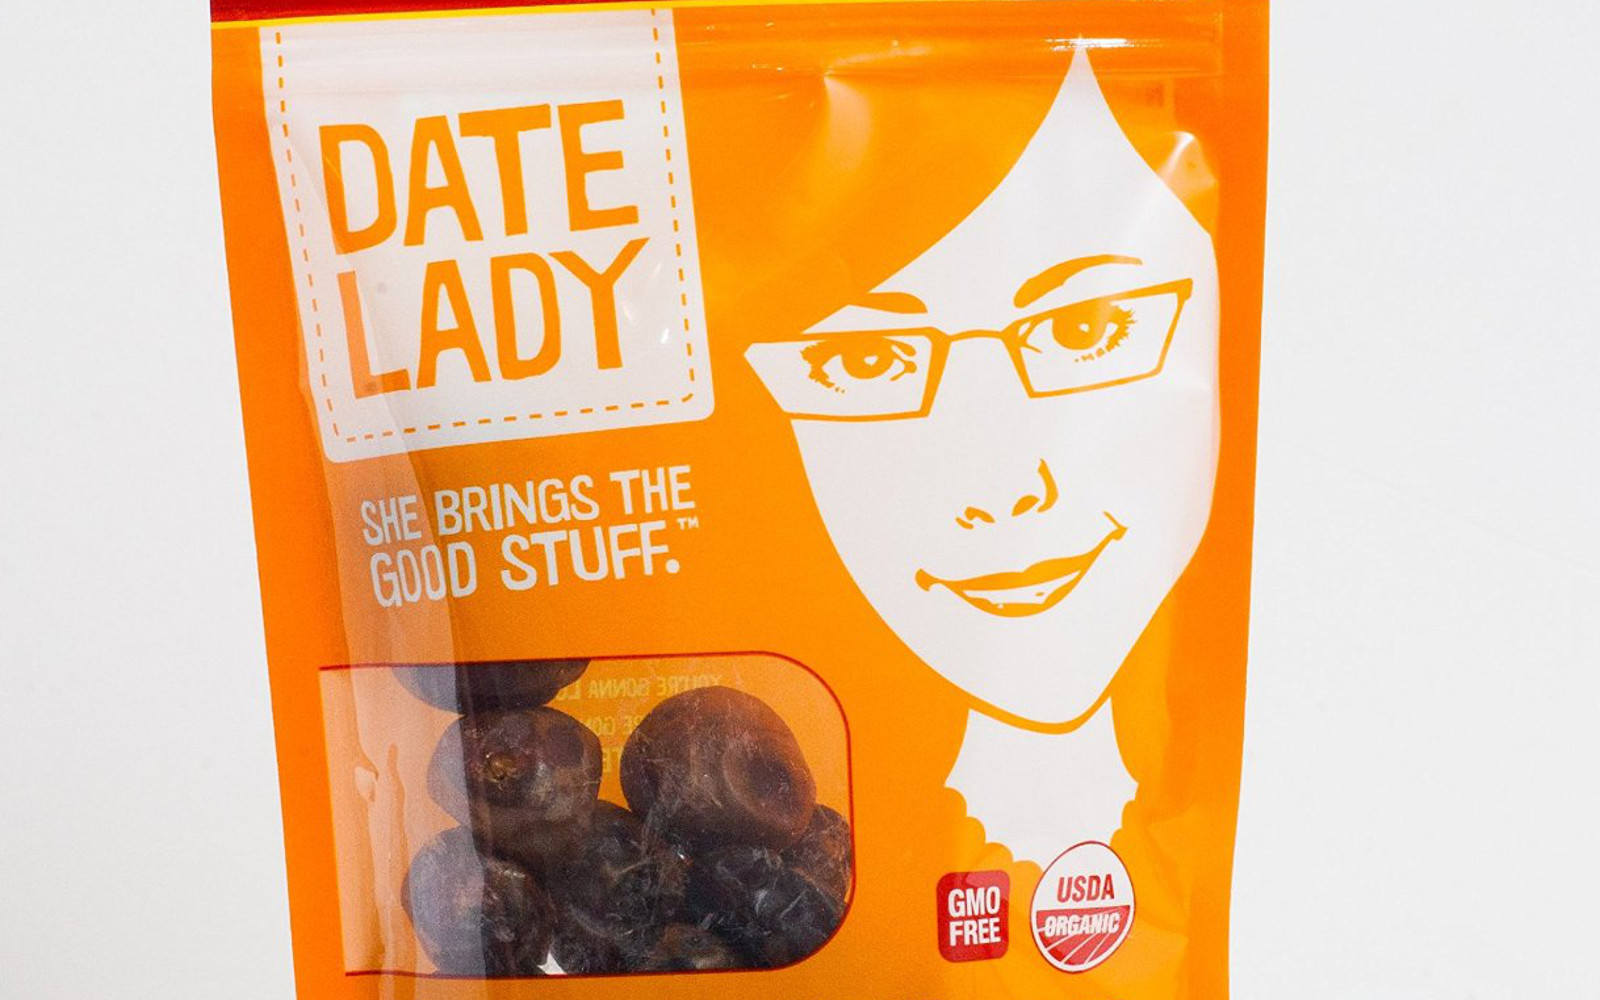 Date Lady Dates